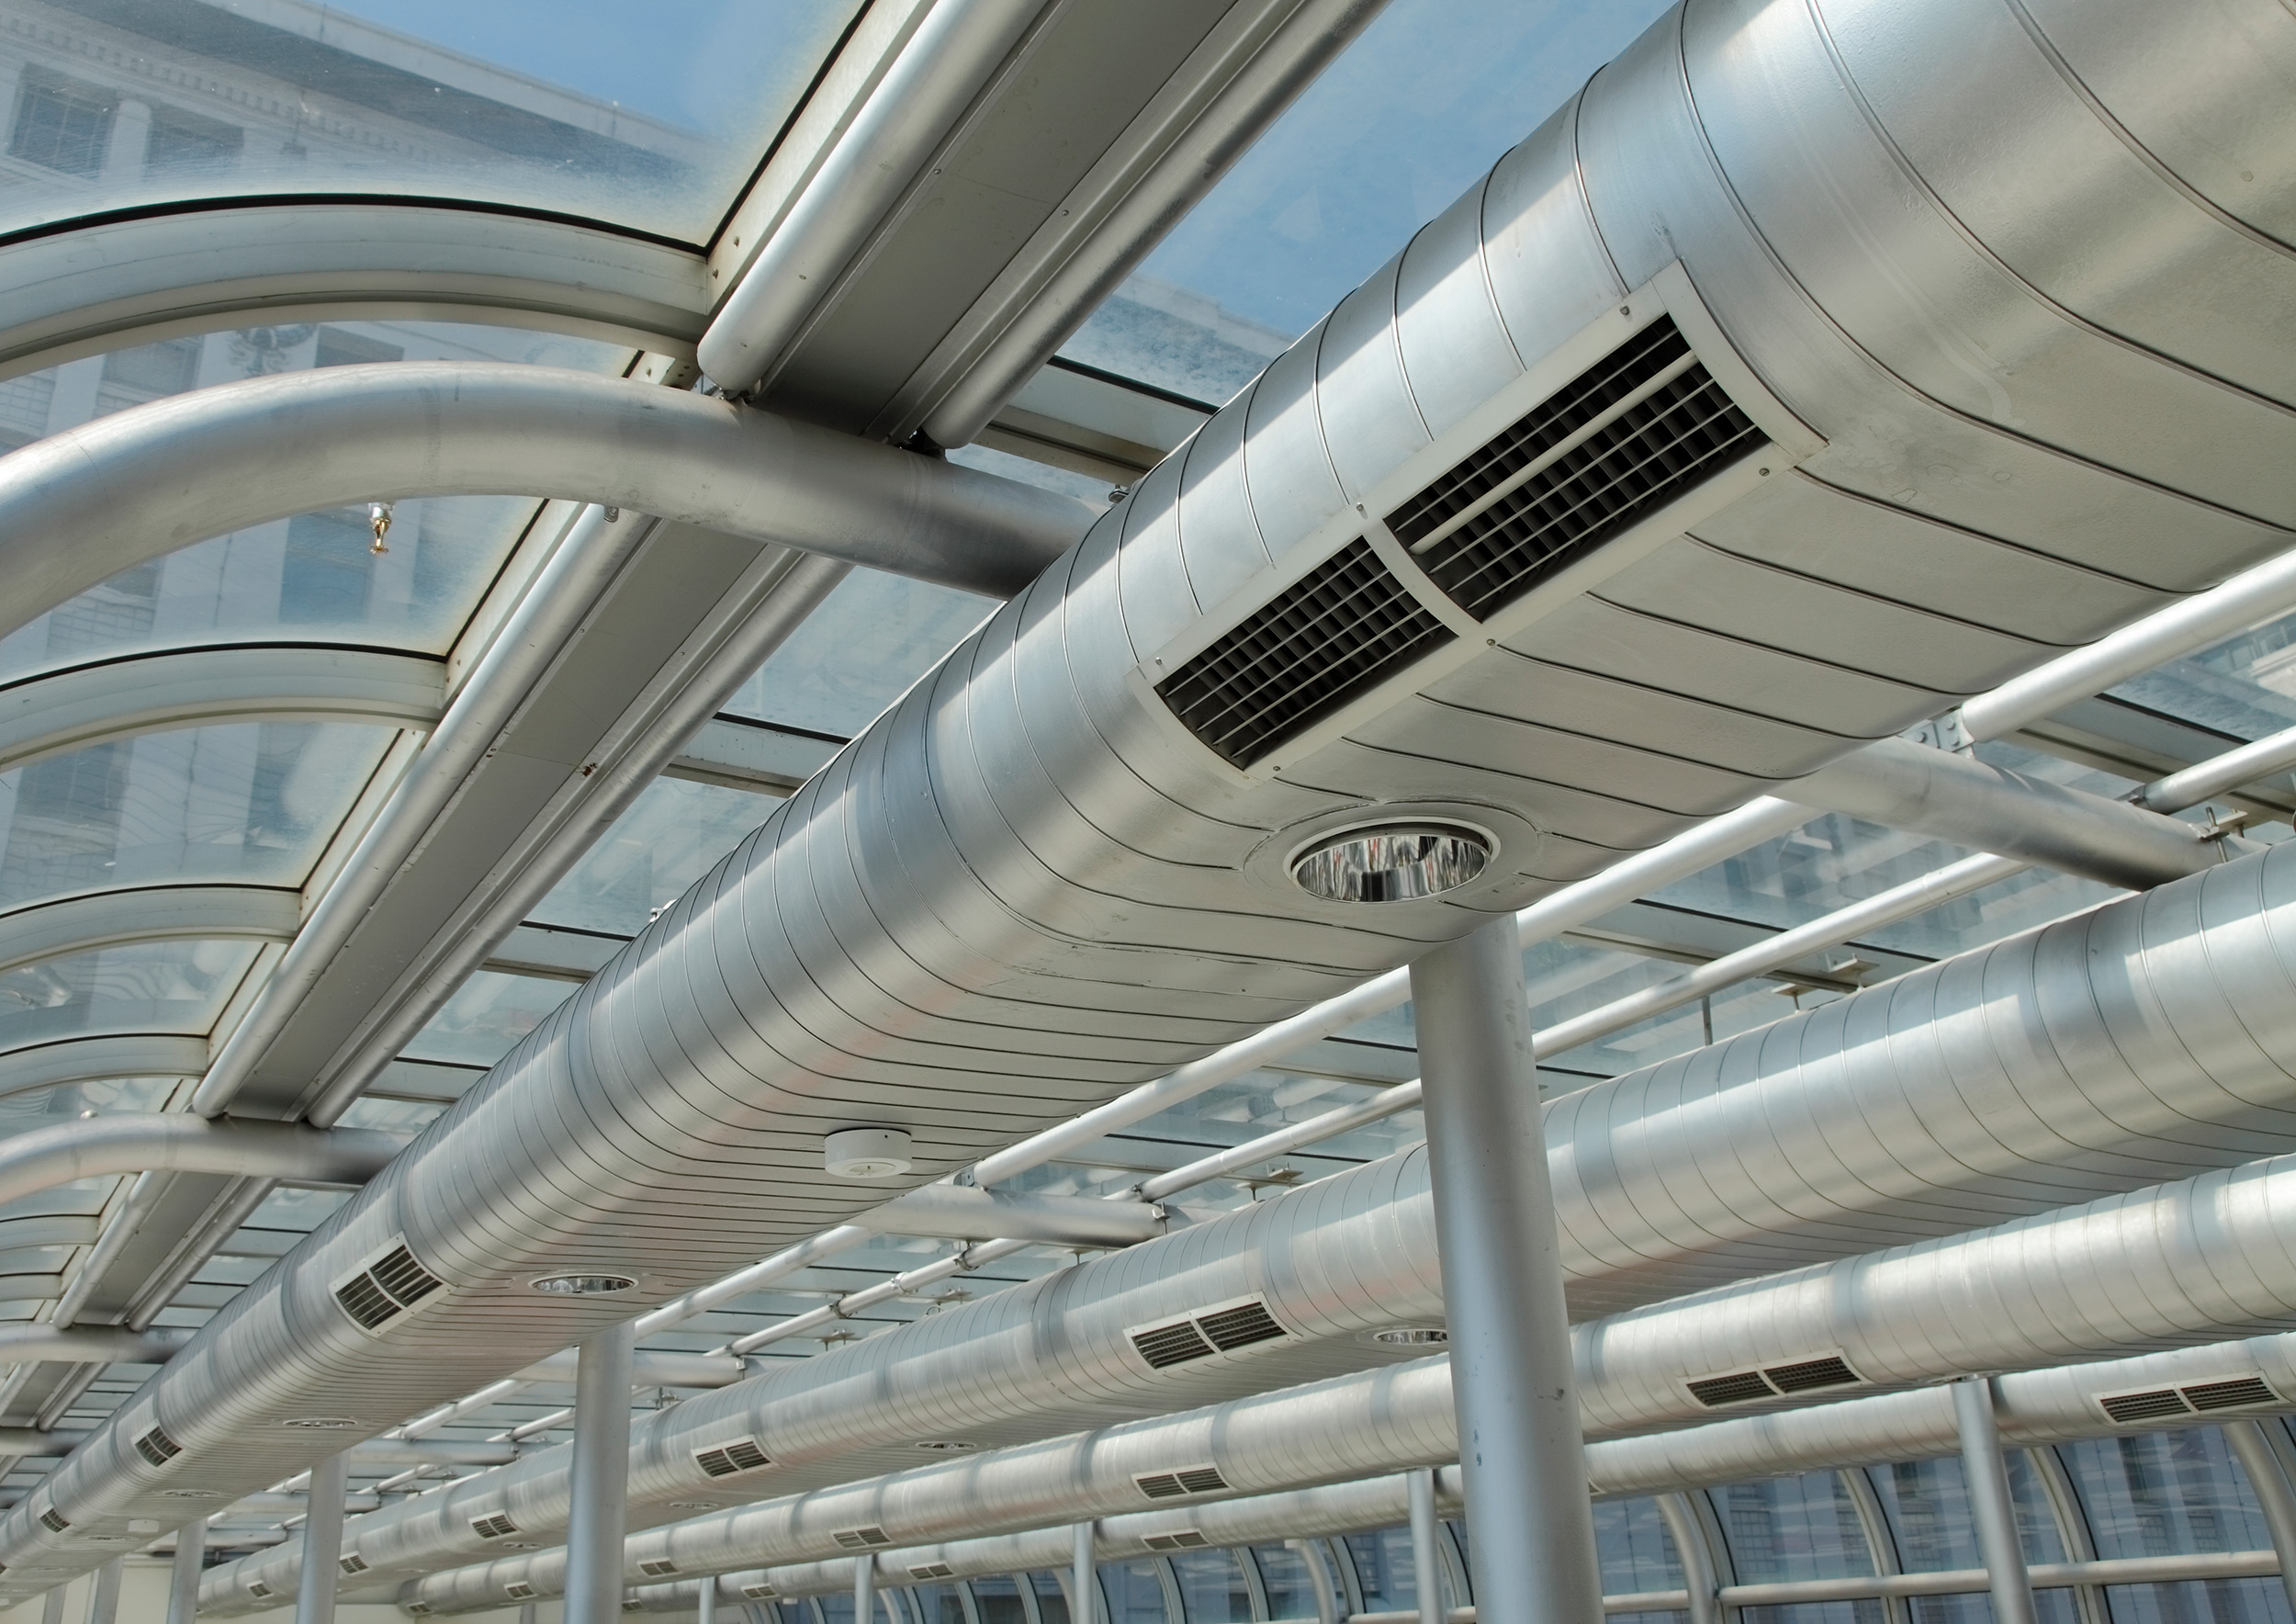 Ventilation Systems Ducting : Hvac system testing and inspection in tÜv rheinland